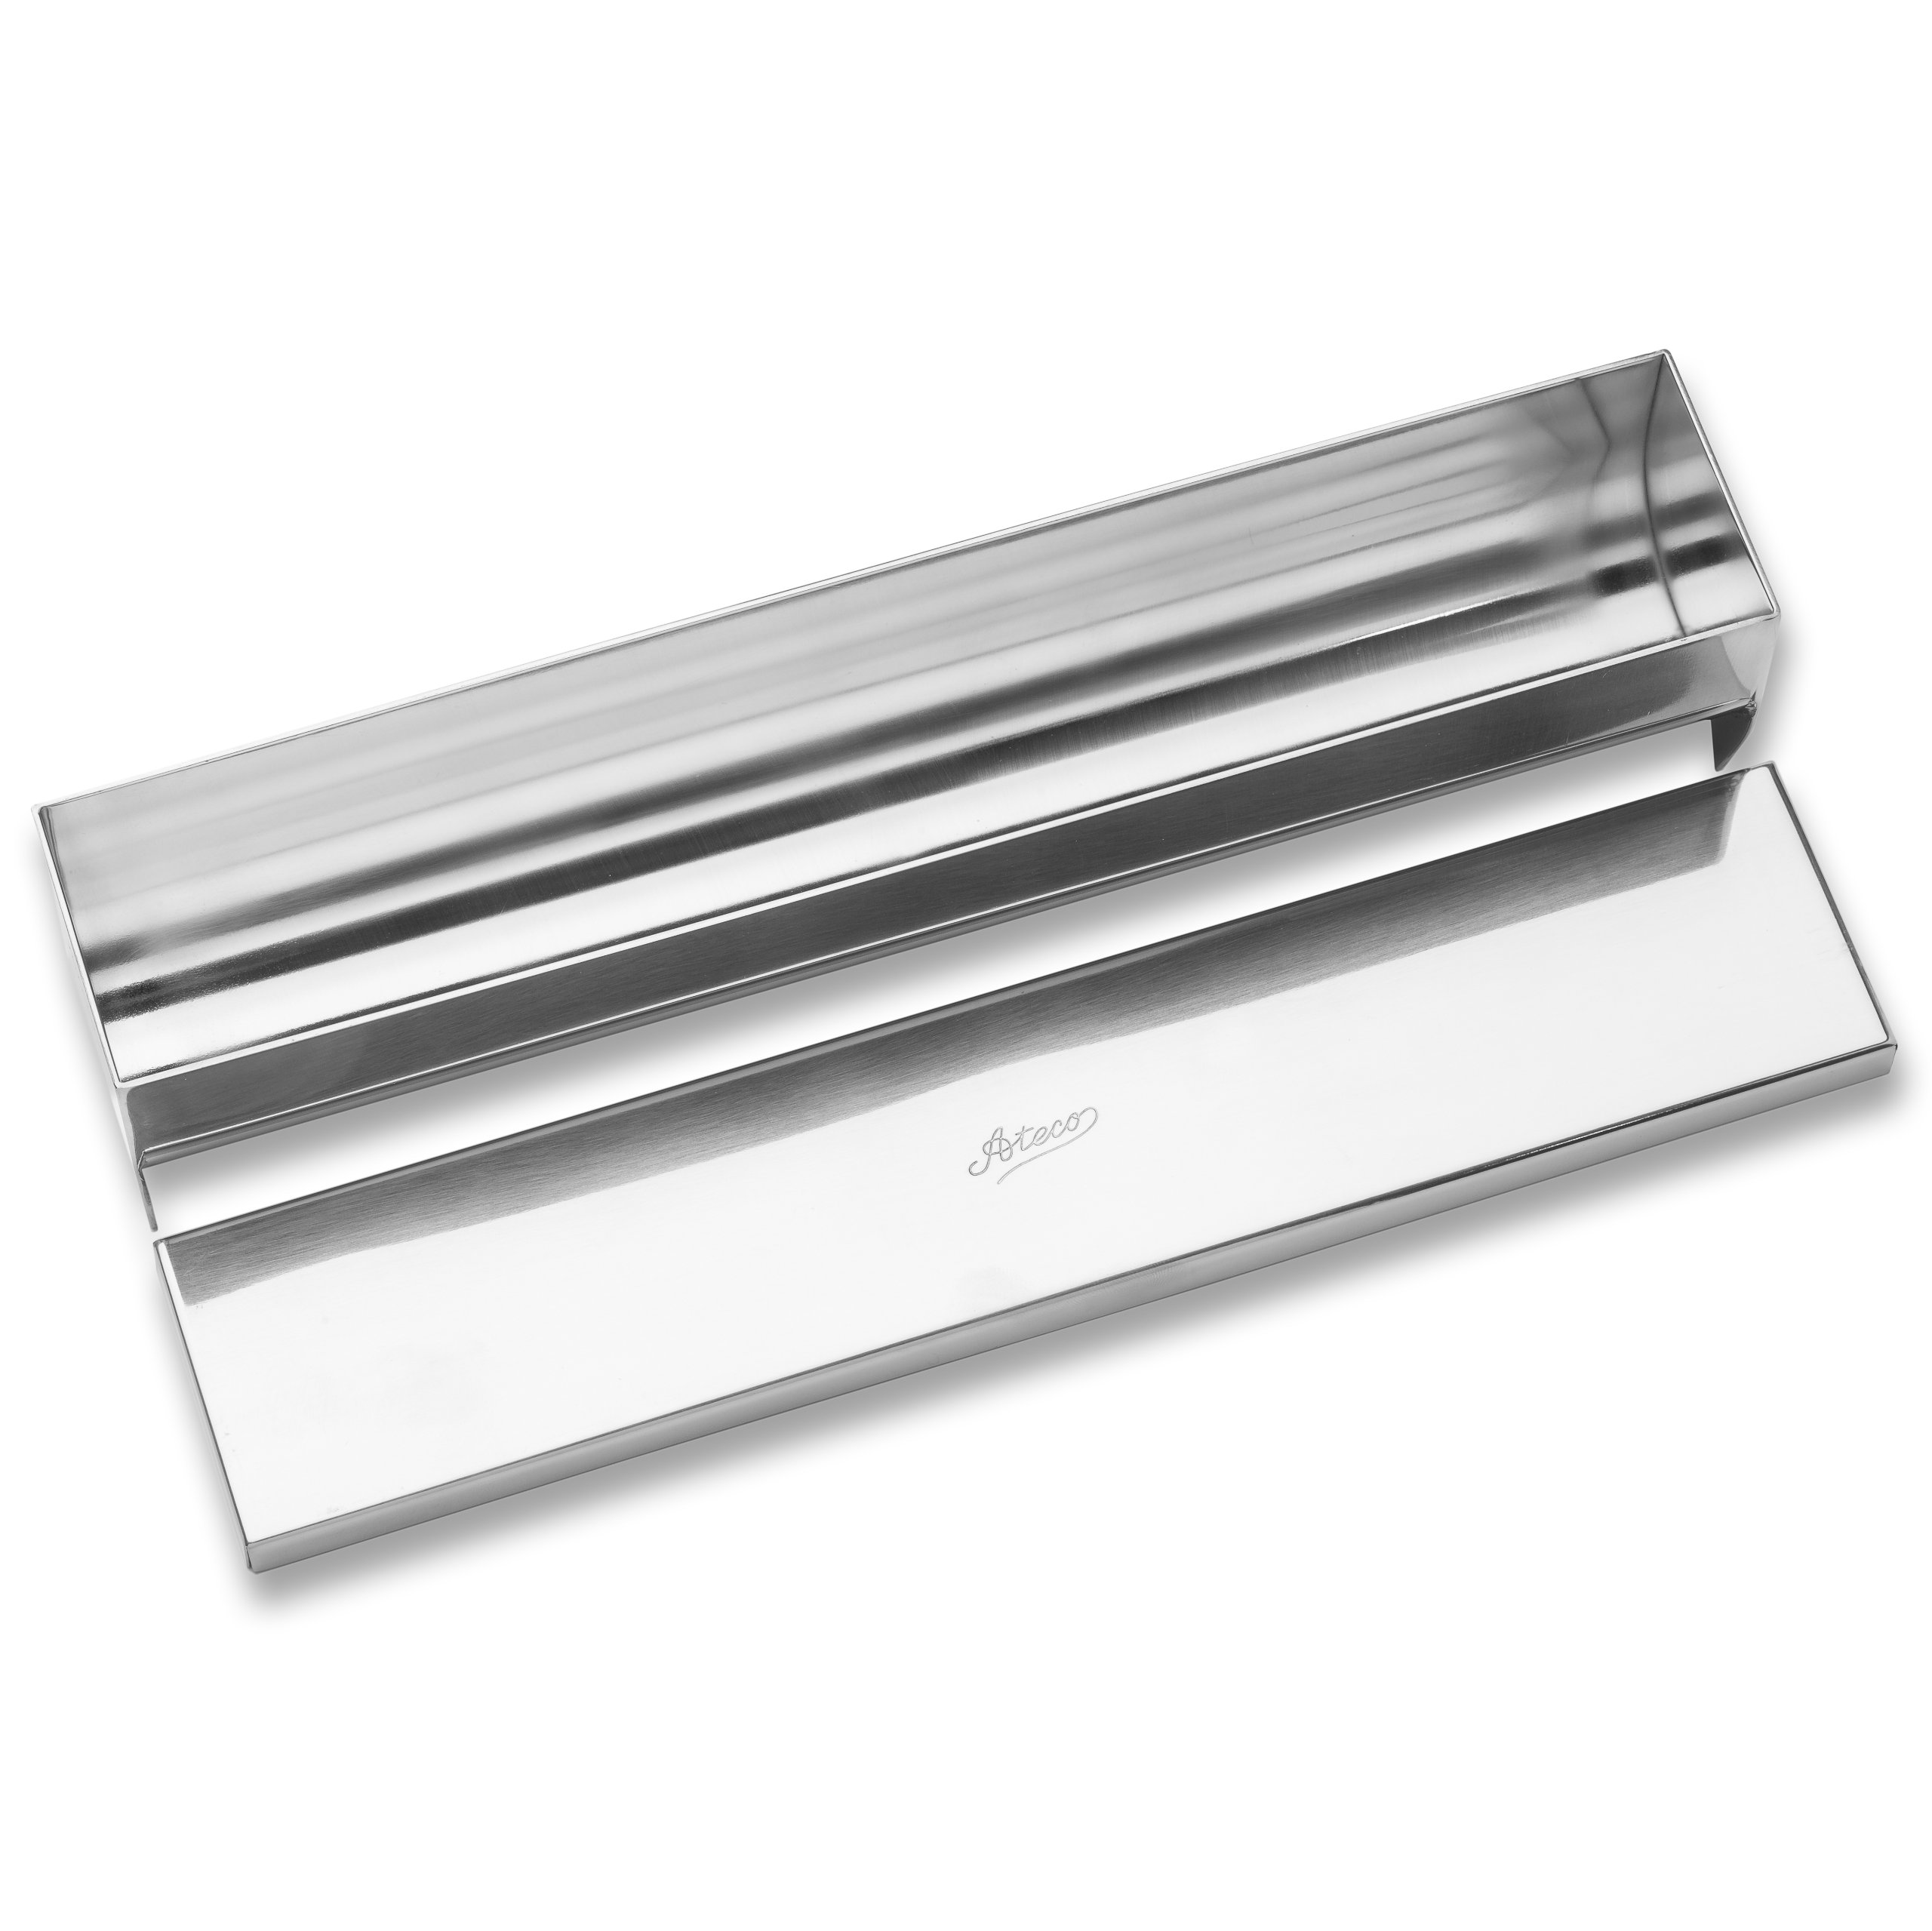 Ateco 4918 Stainless Steel Terrine Mold with Cover, Round Bottom, 11.75 by 2.25-Inches by Ateco